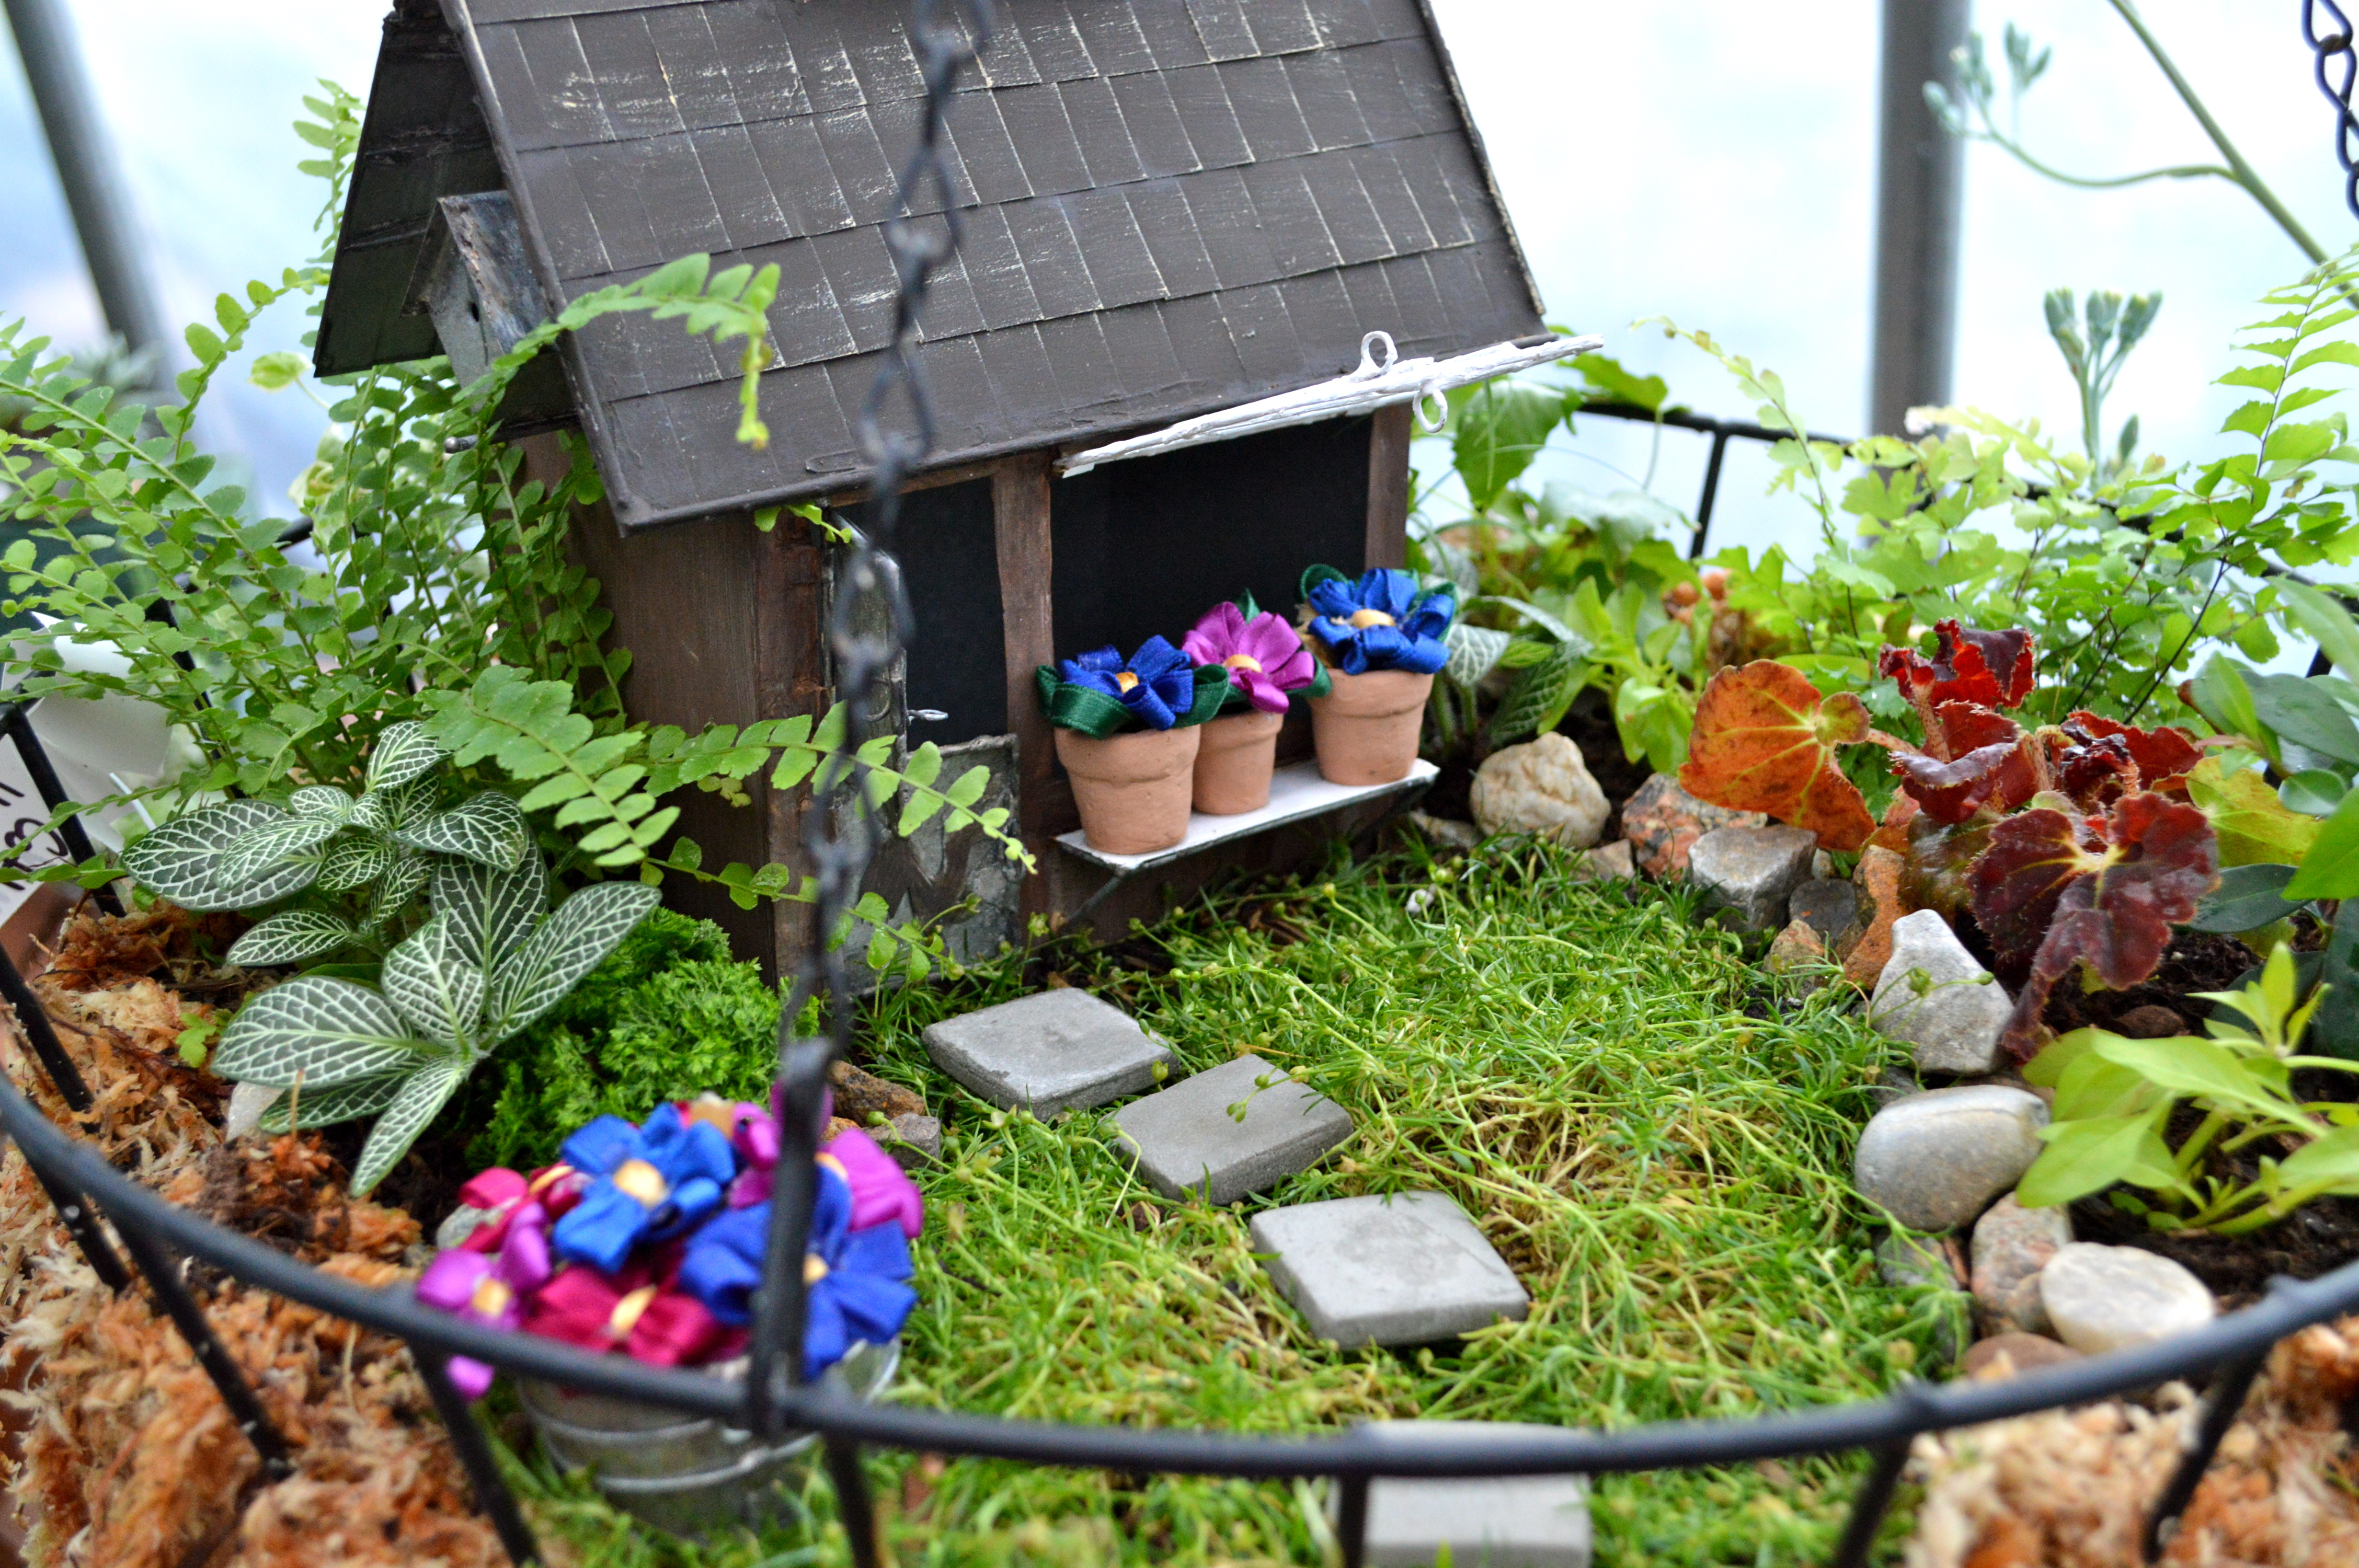 diy fairy house, little wooden house decoration, inside a tiny garden, with small plants, grass and small tiles, model pots with artificial flowers